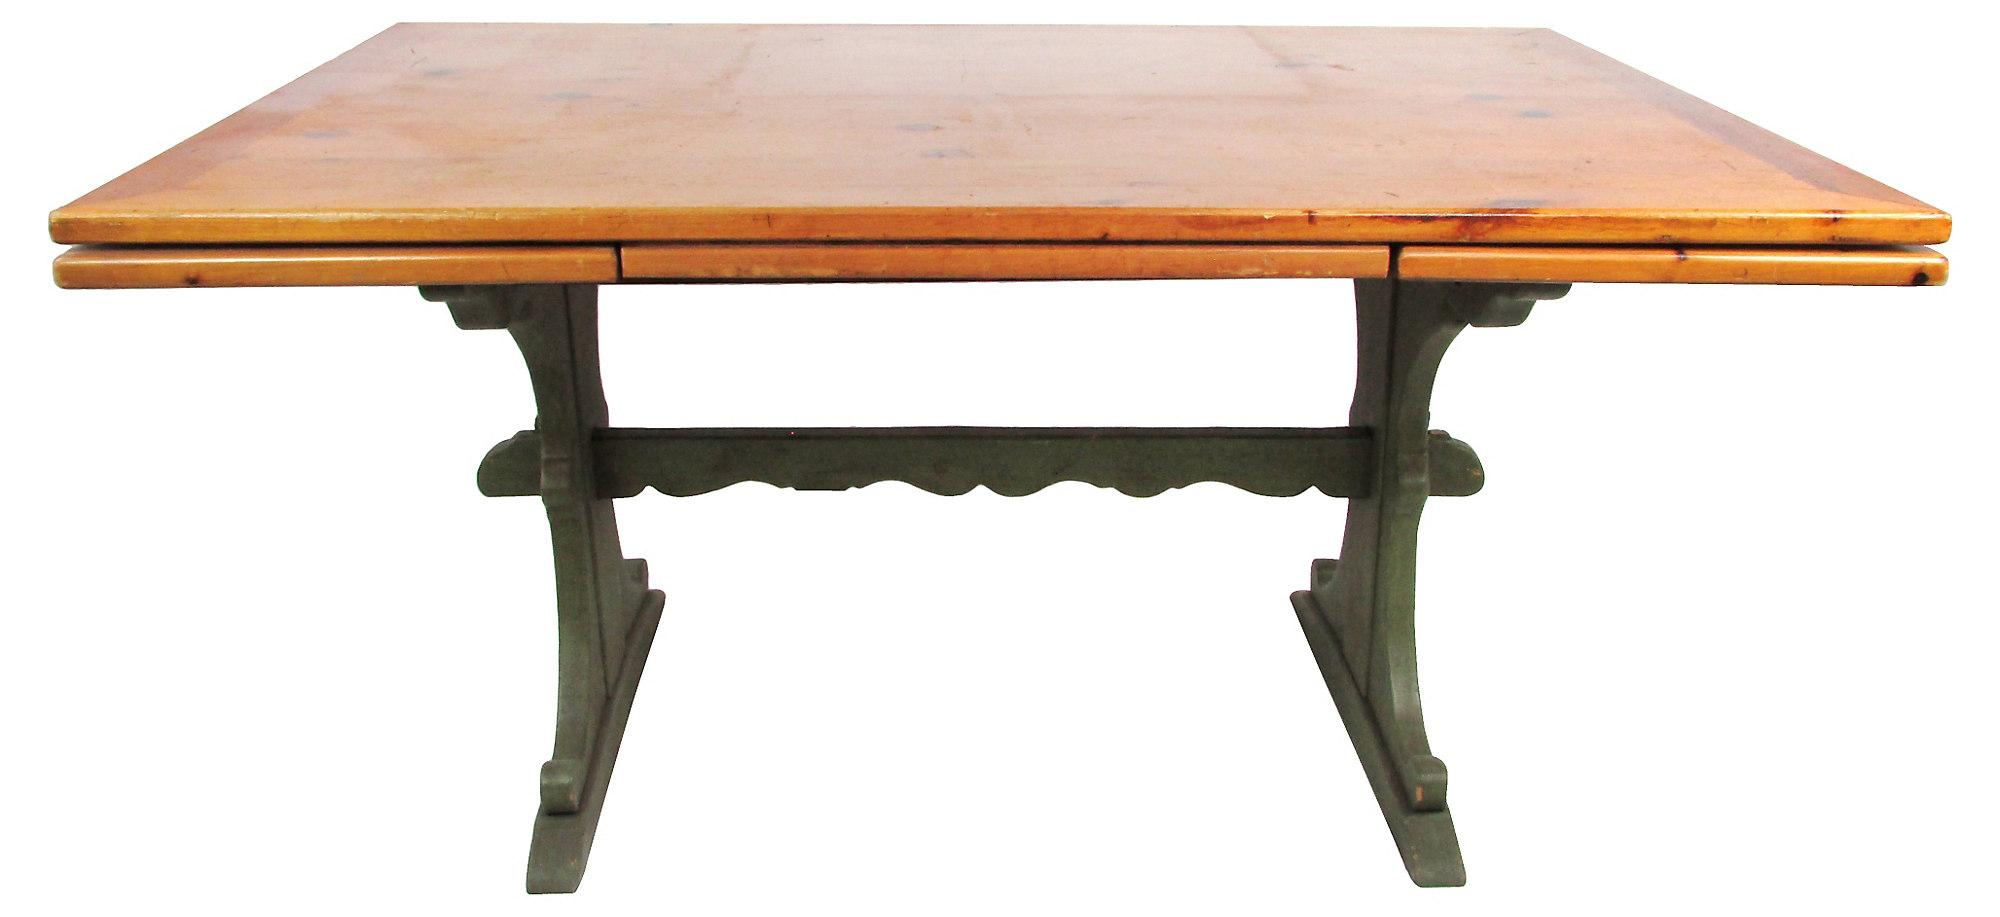 Pine trestle table with hidden leaves chairish for Spl table 98 99